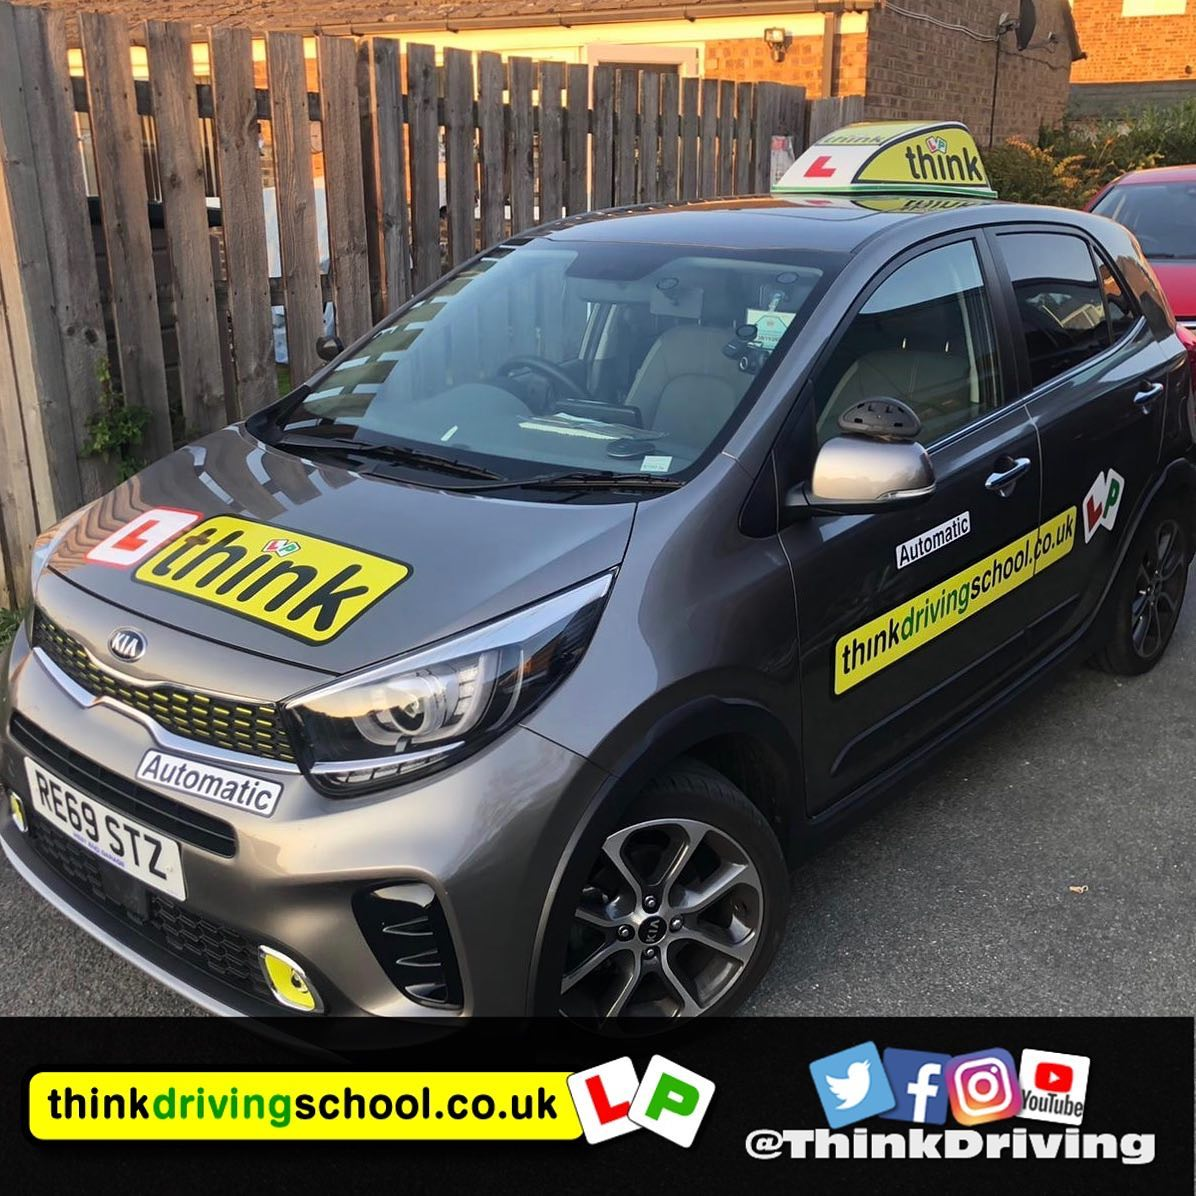 driving lessons Bracknell Stephen Towell think driving school Toyota Yaris